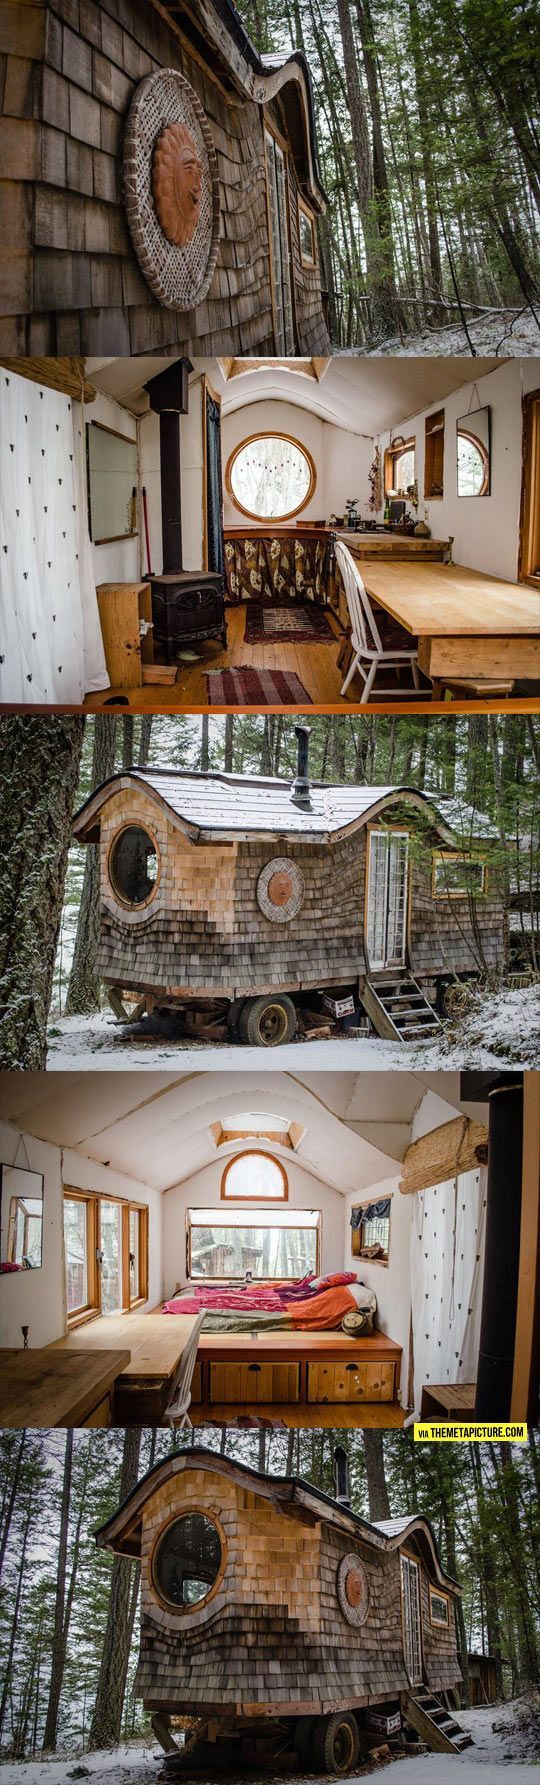 Just A Tiny House Home DesignsHippie HouseTiny